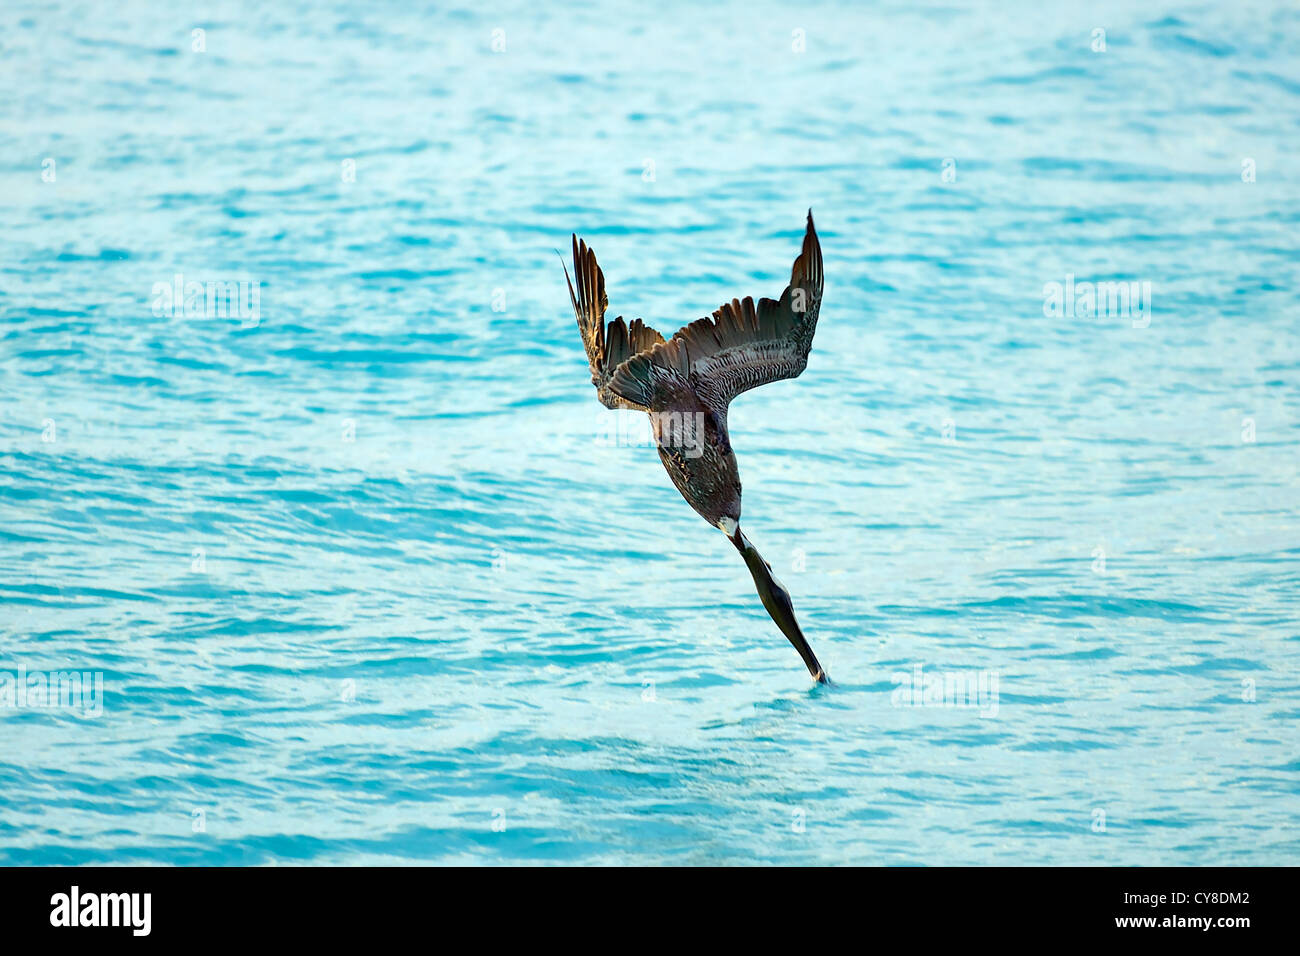 Diving Brown Pelican plunging into water after fish - Stock Image